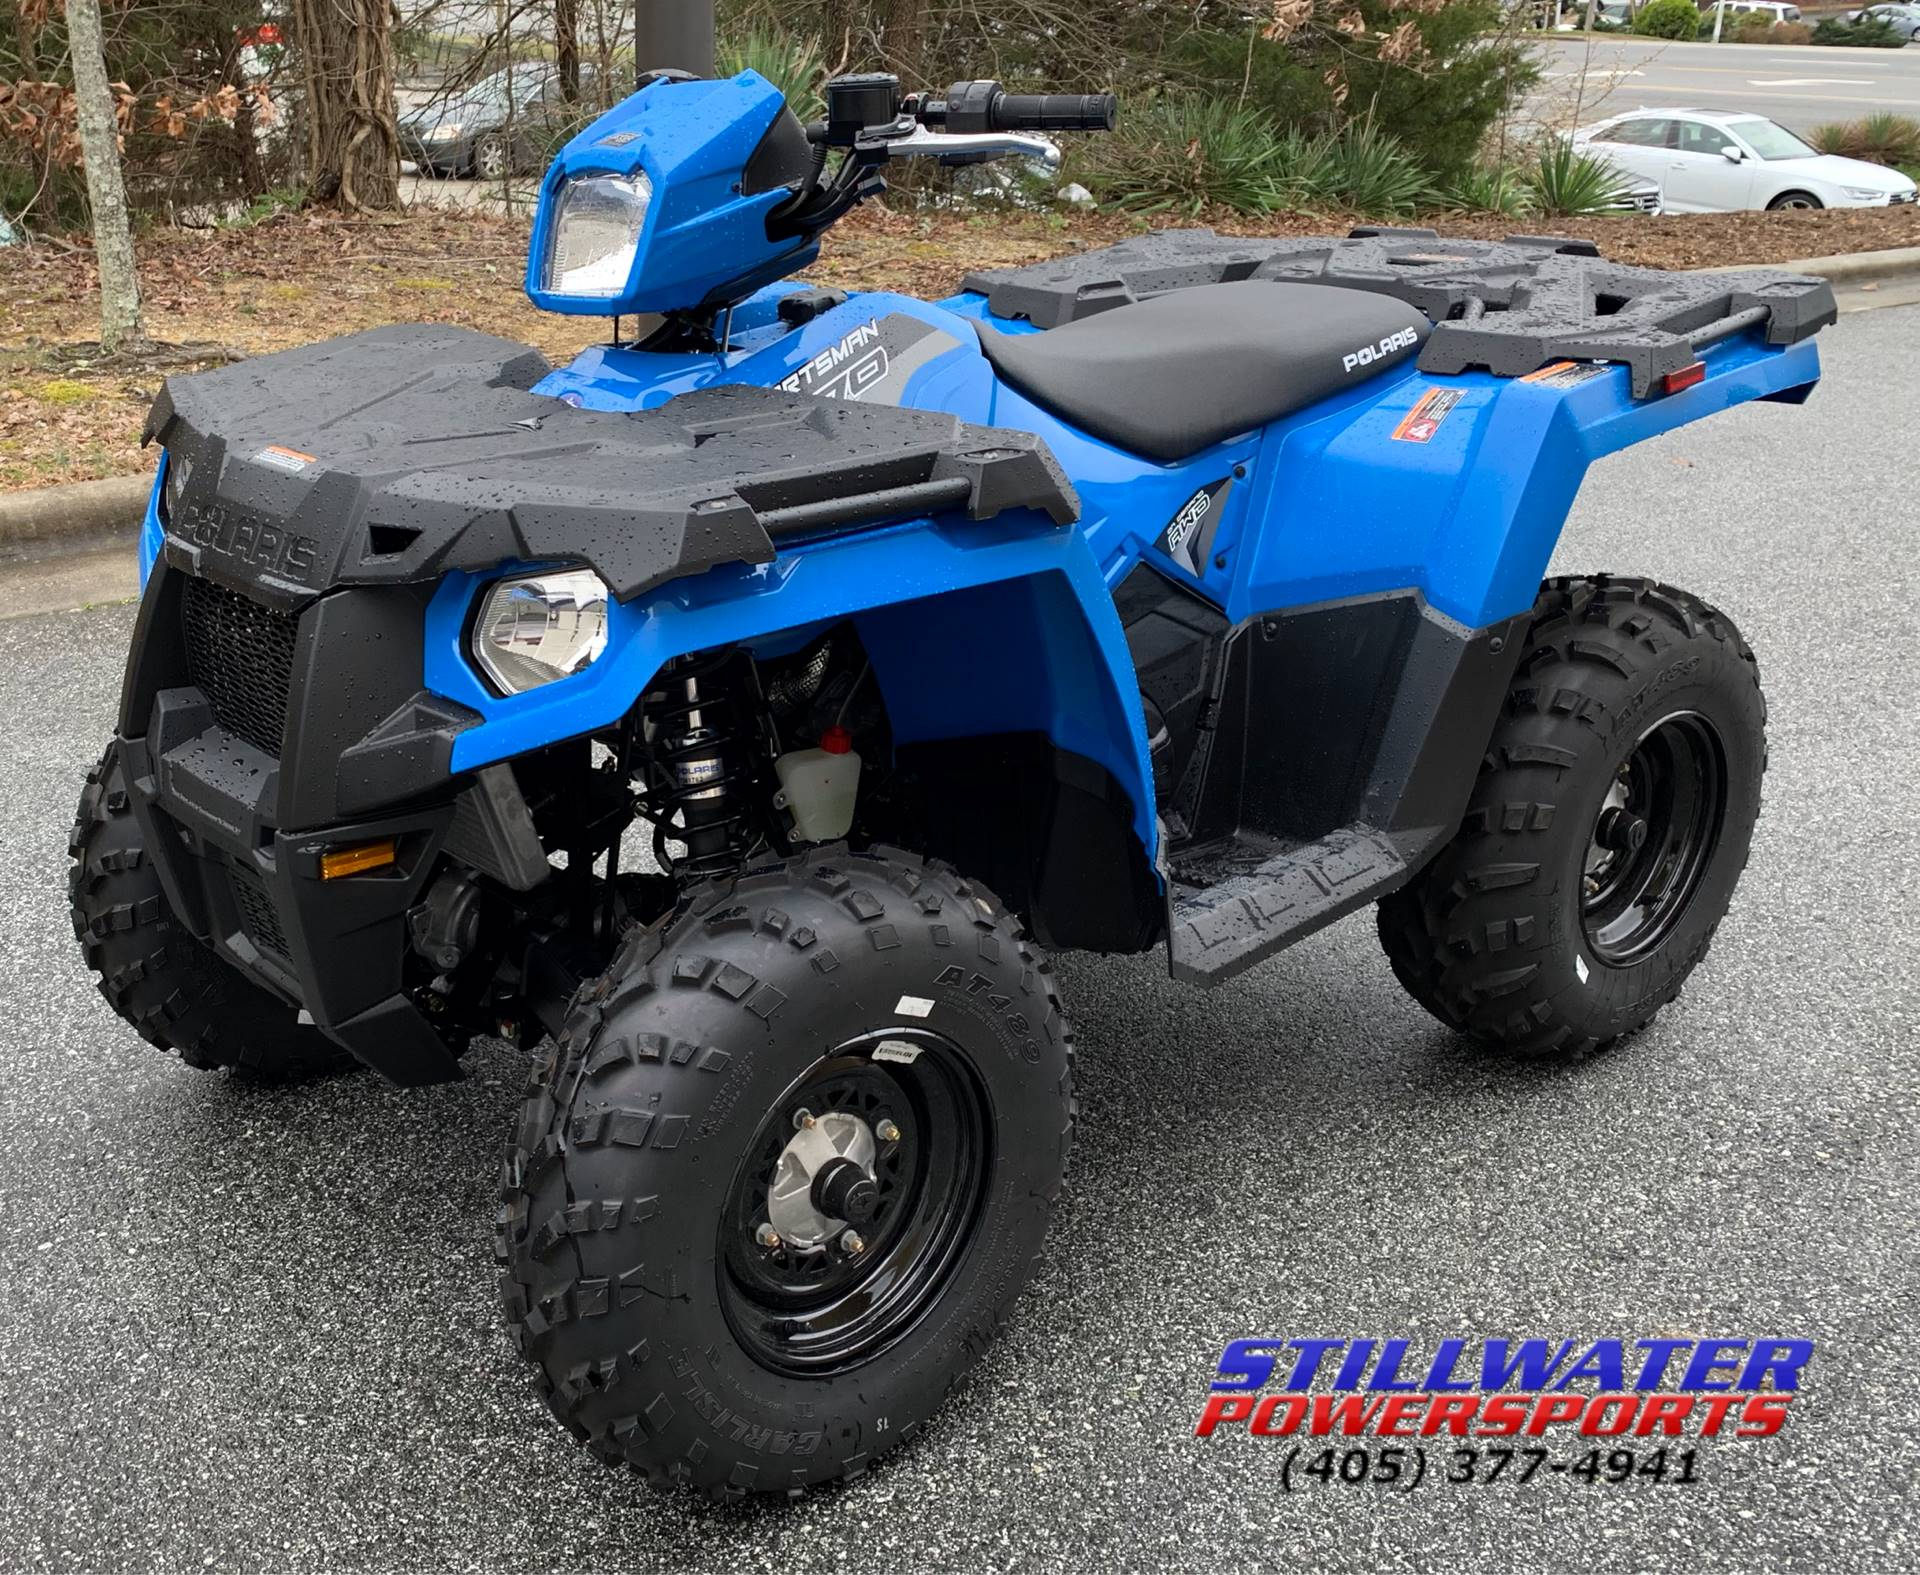 2019 Polaris Sportsman 570 in Stillwater, Oklahoma - Photo 1